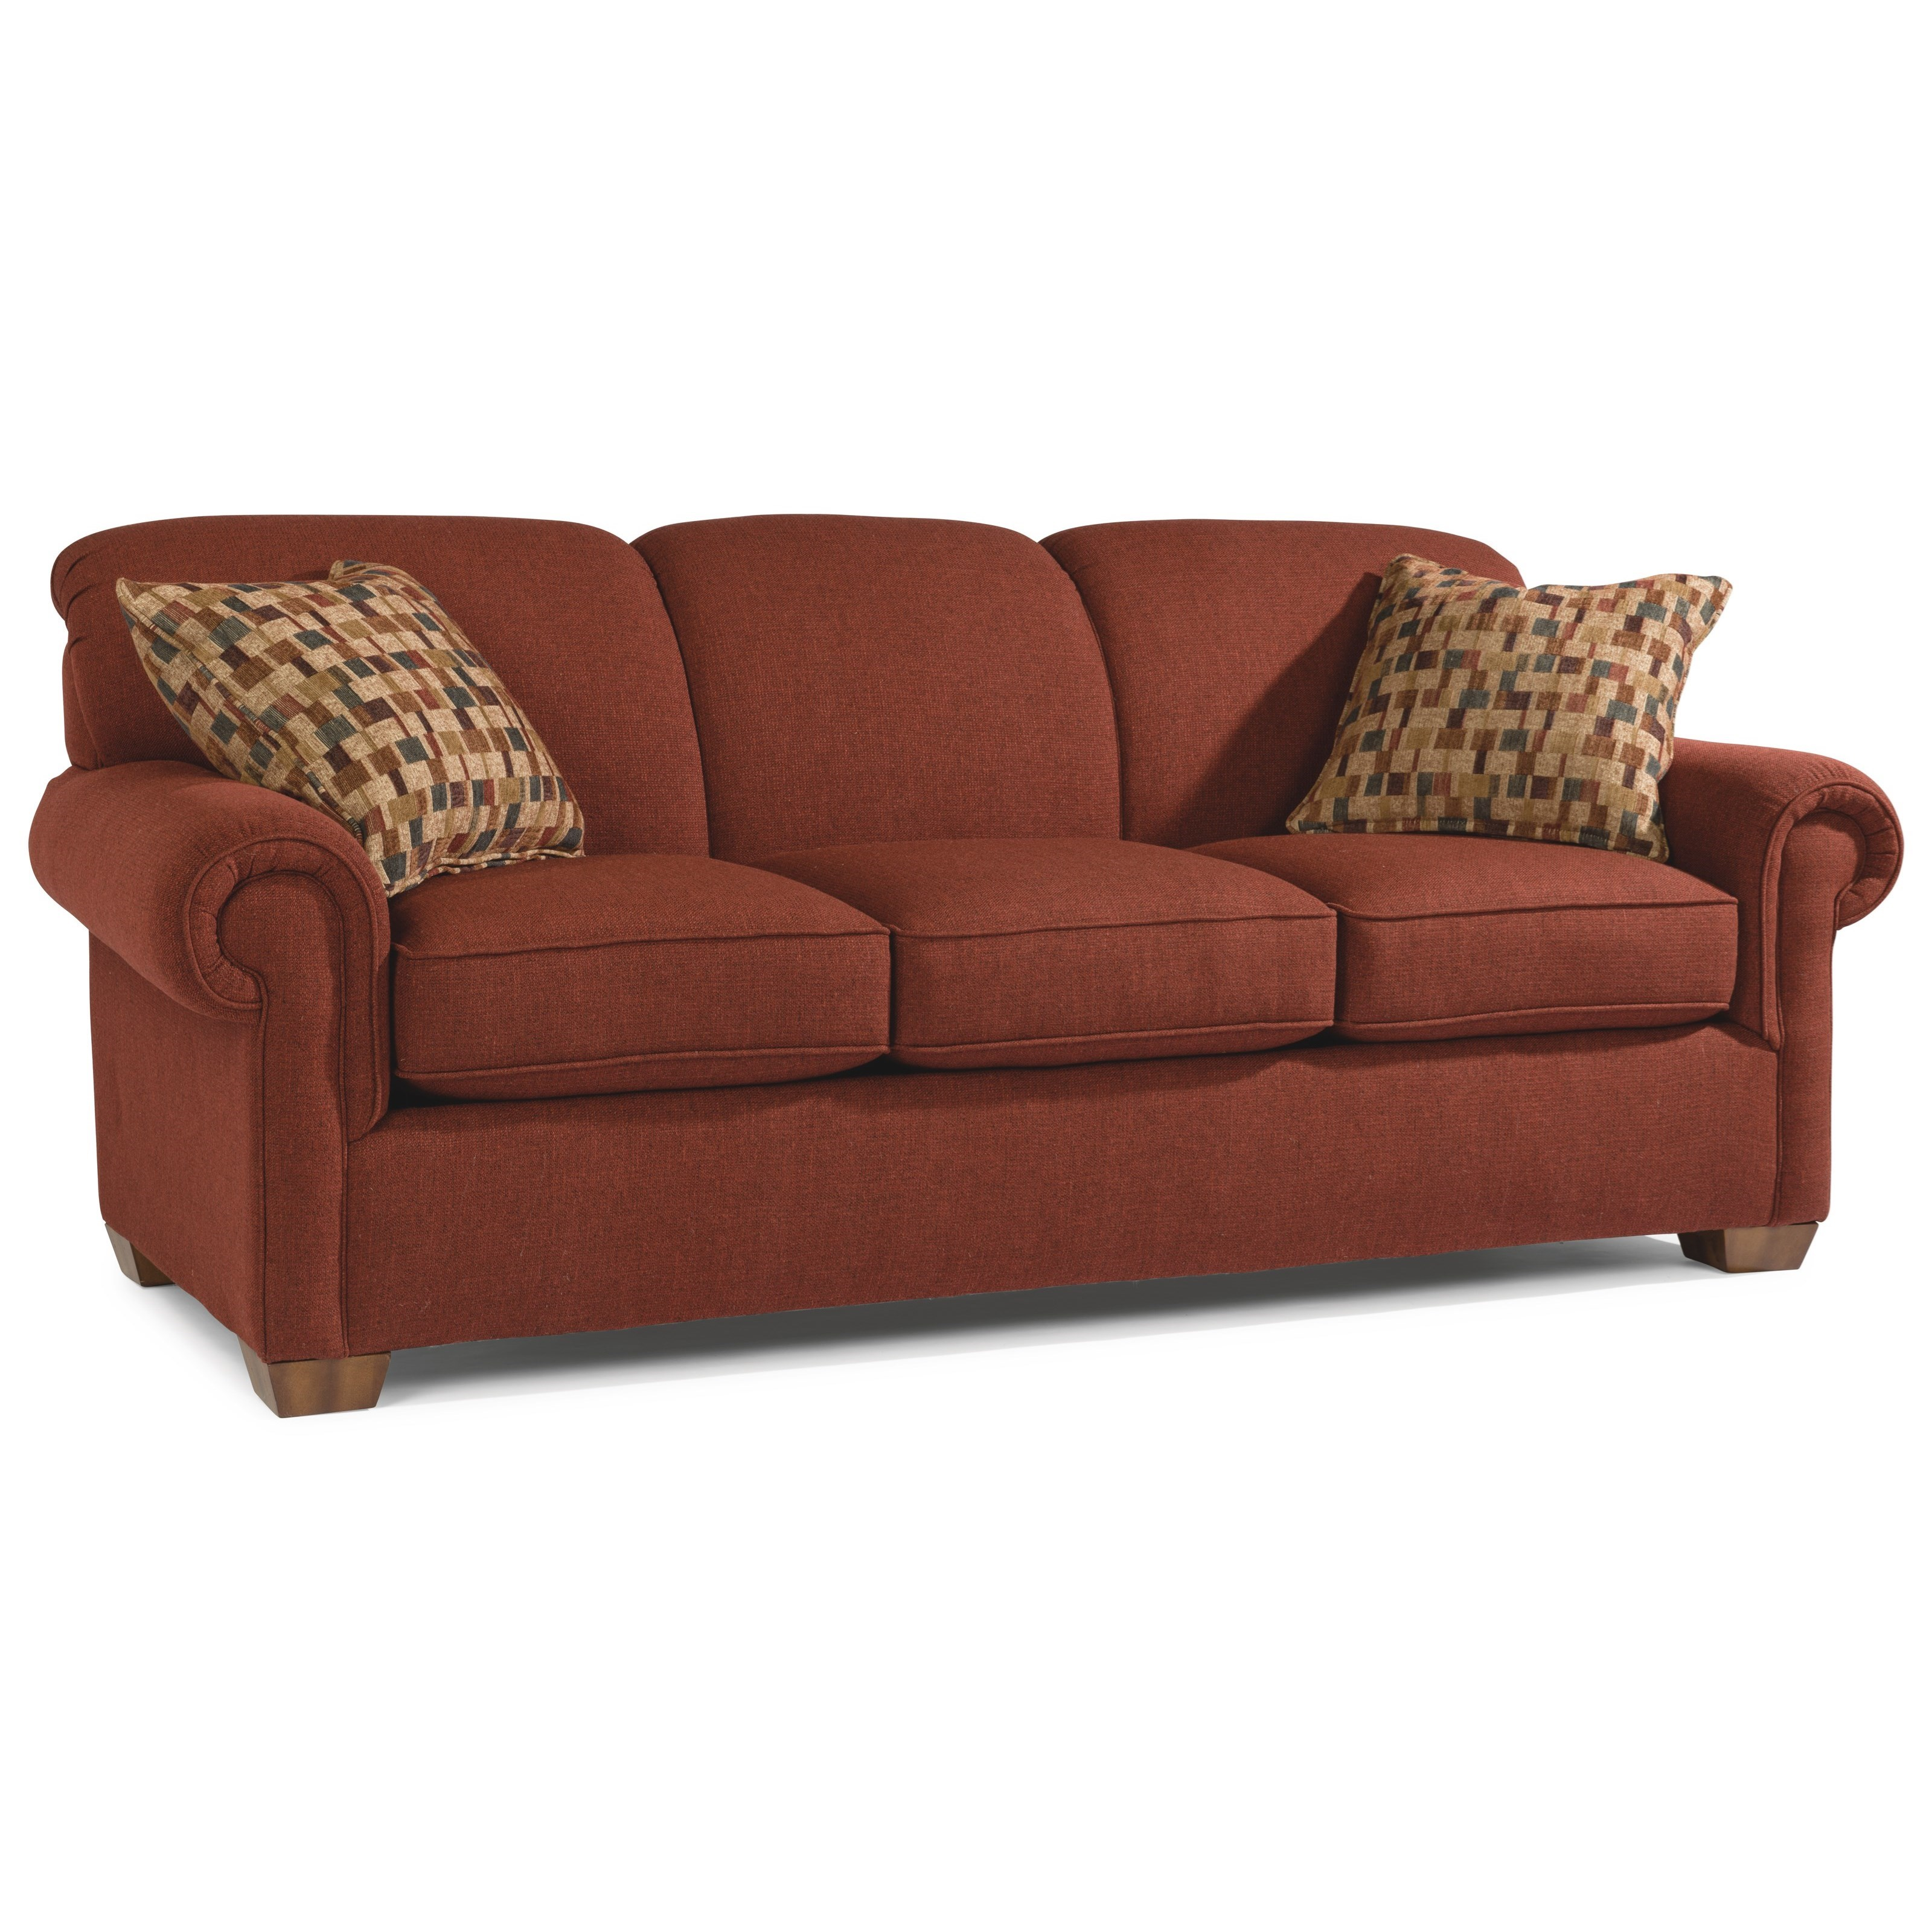 Main Street Sofa by Flexsteel at Furniture Superstore - Rochester, MN